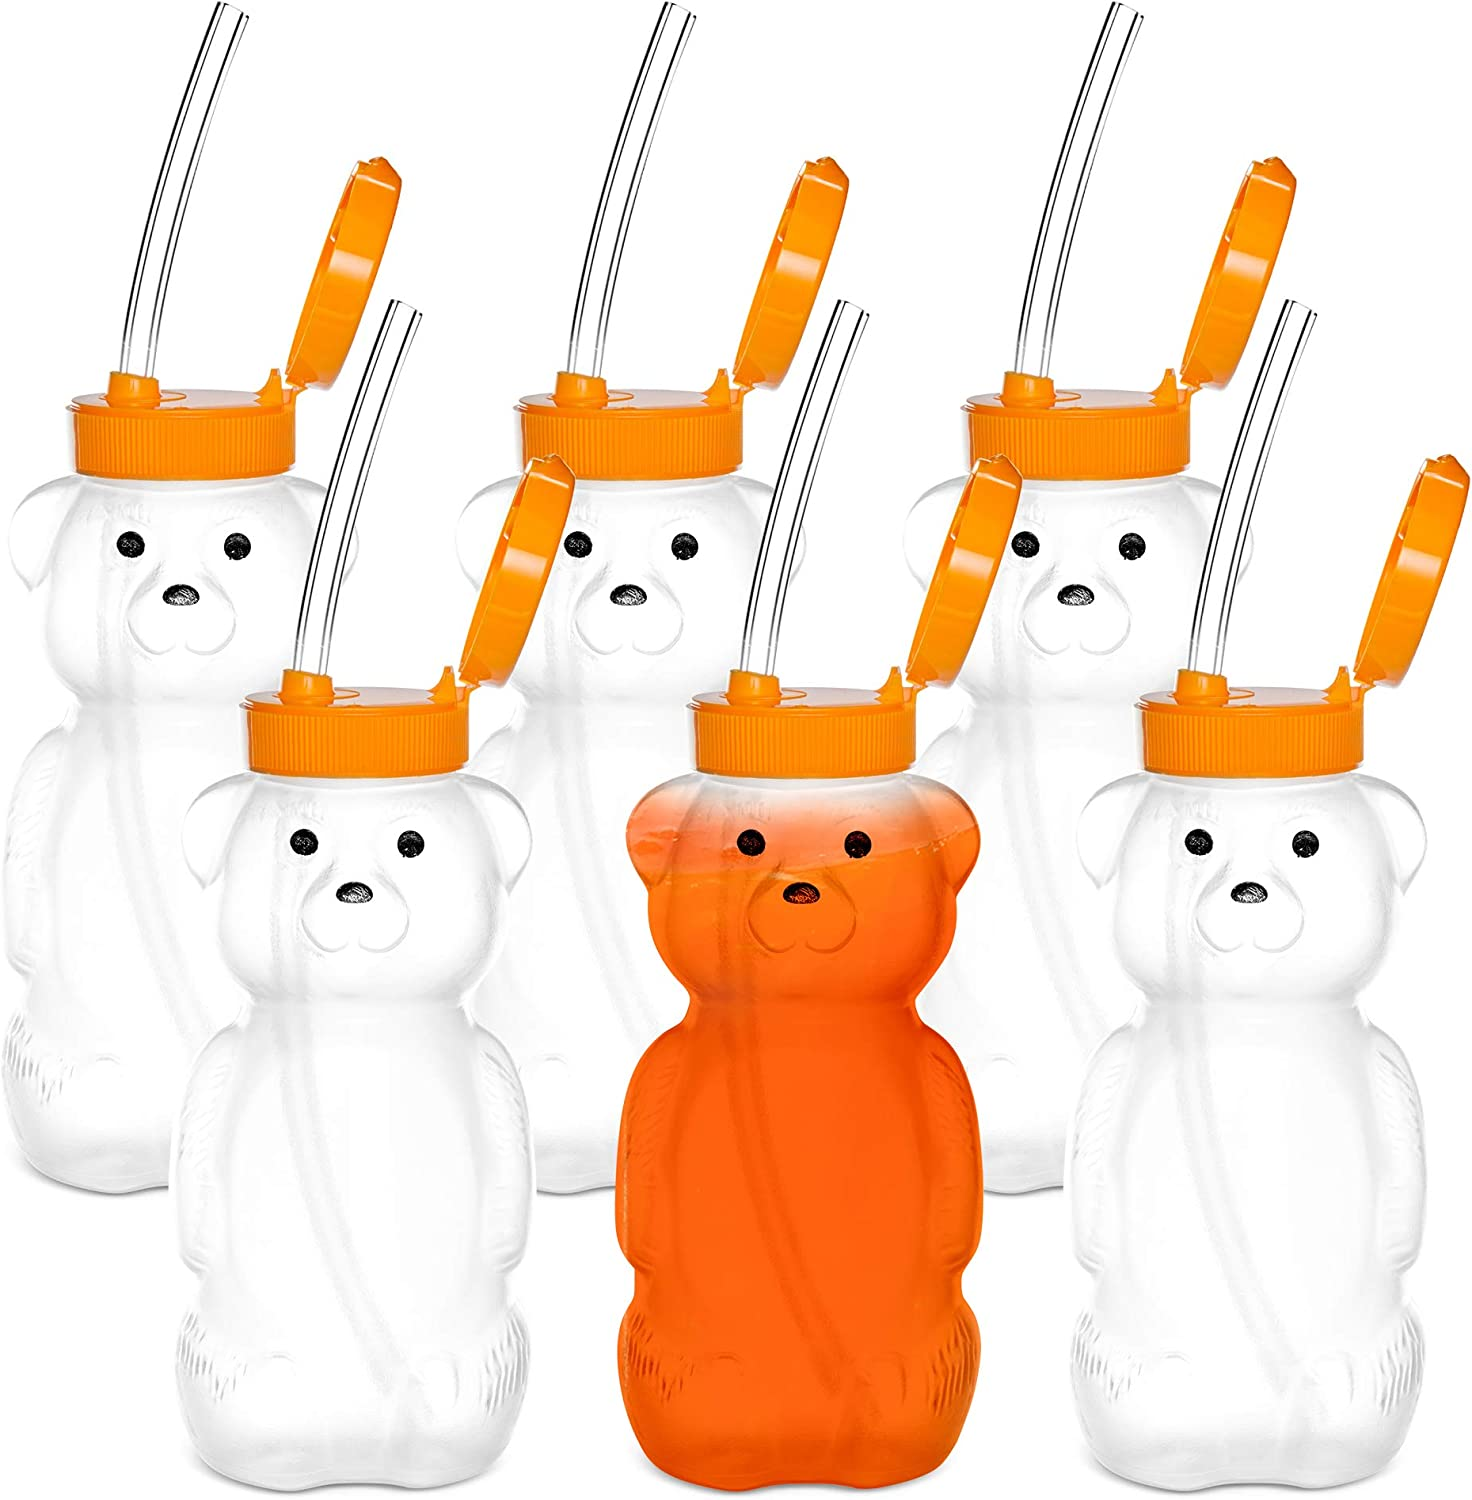 Special Supplies Juice Bear Bottle Drinking Cup with Long Straws, 6 Pack, Squeezable Therapy and Special Needs Assistive Drink Containers, Spill Proof and Leak Resistant Lids